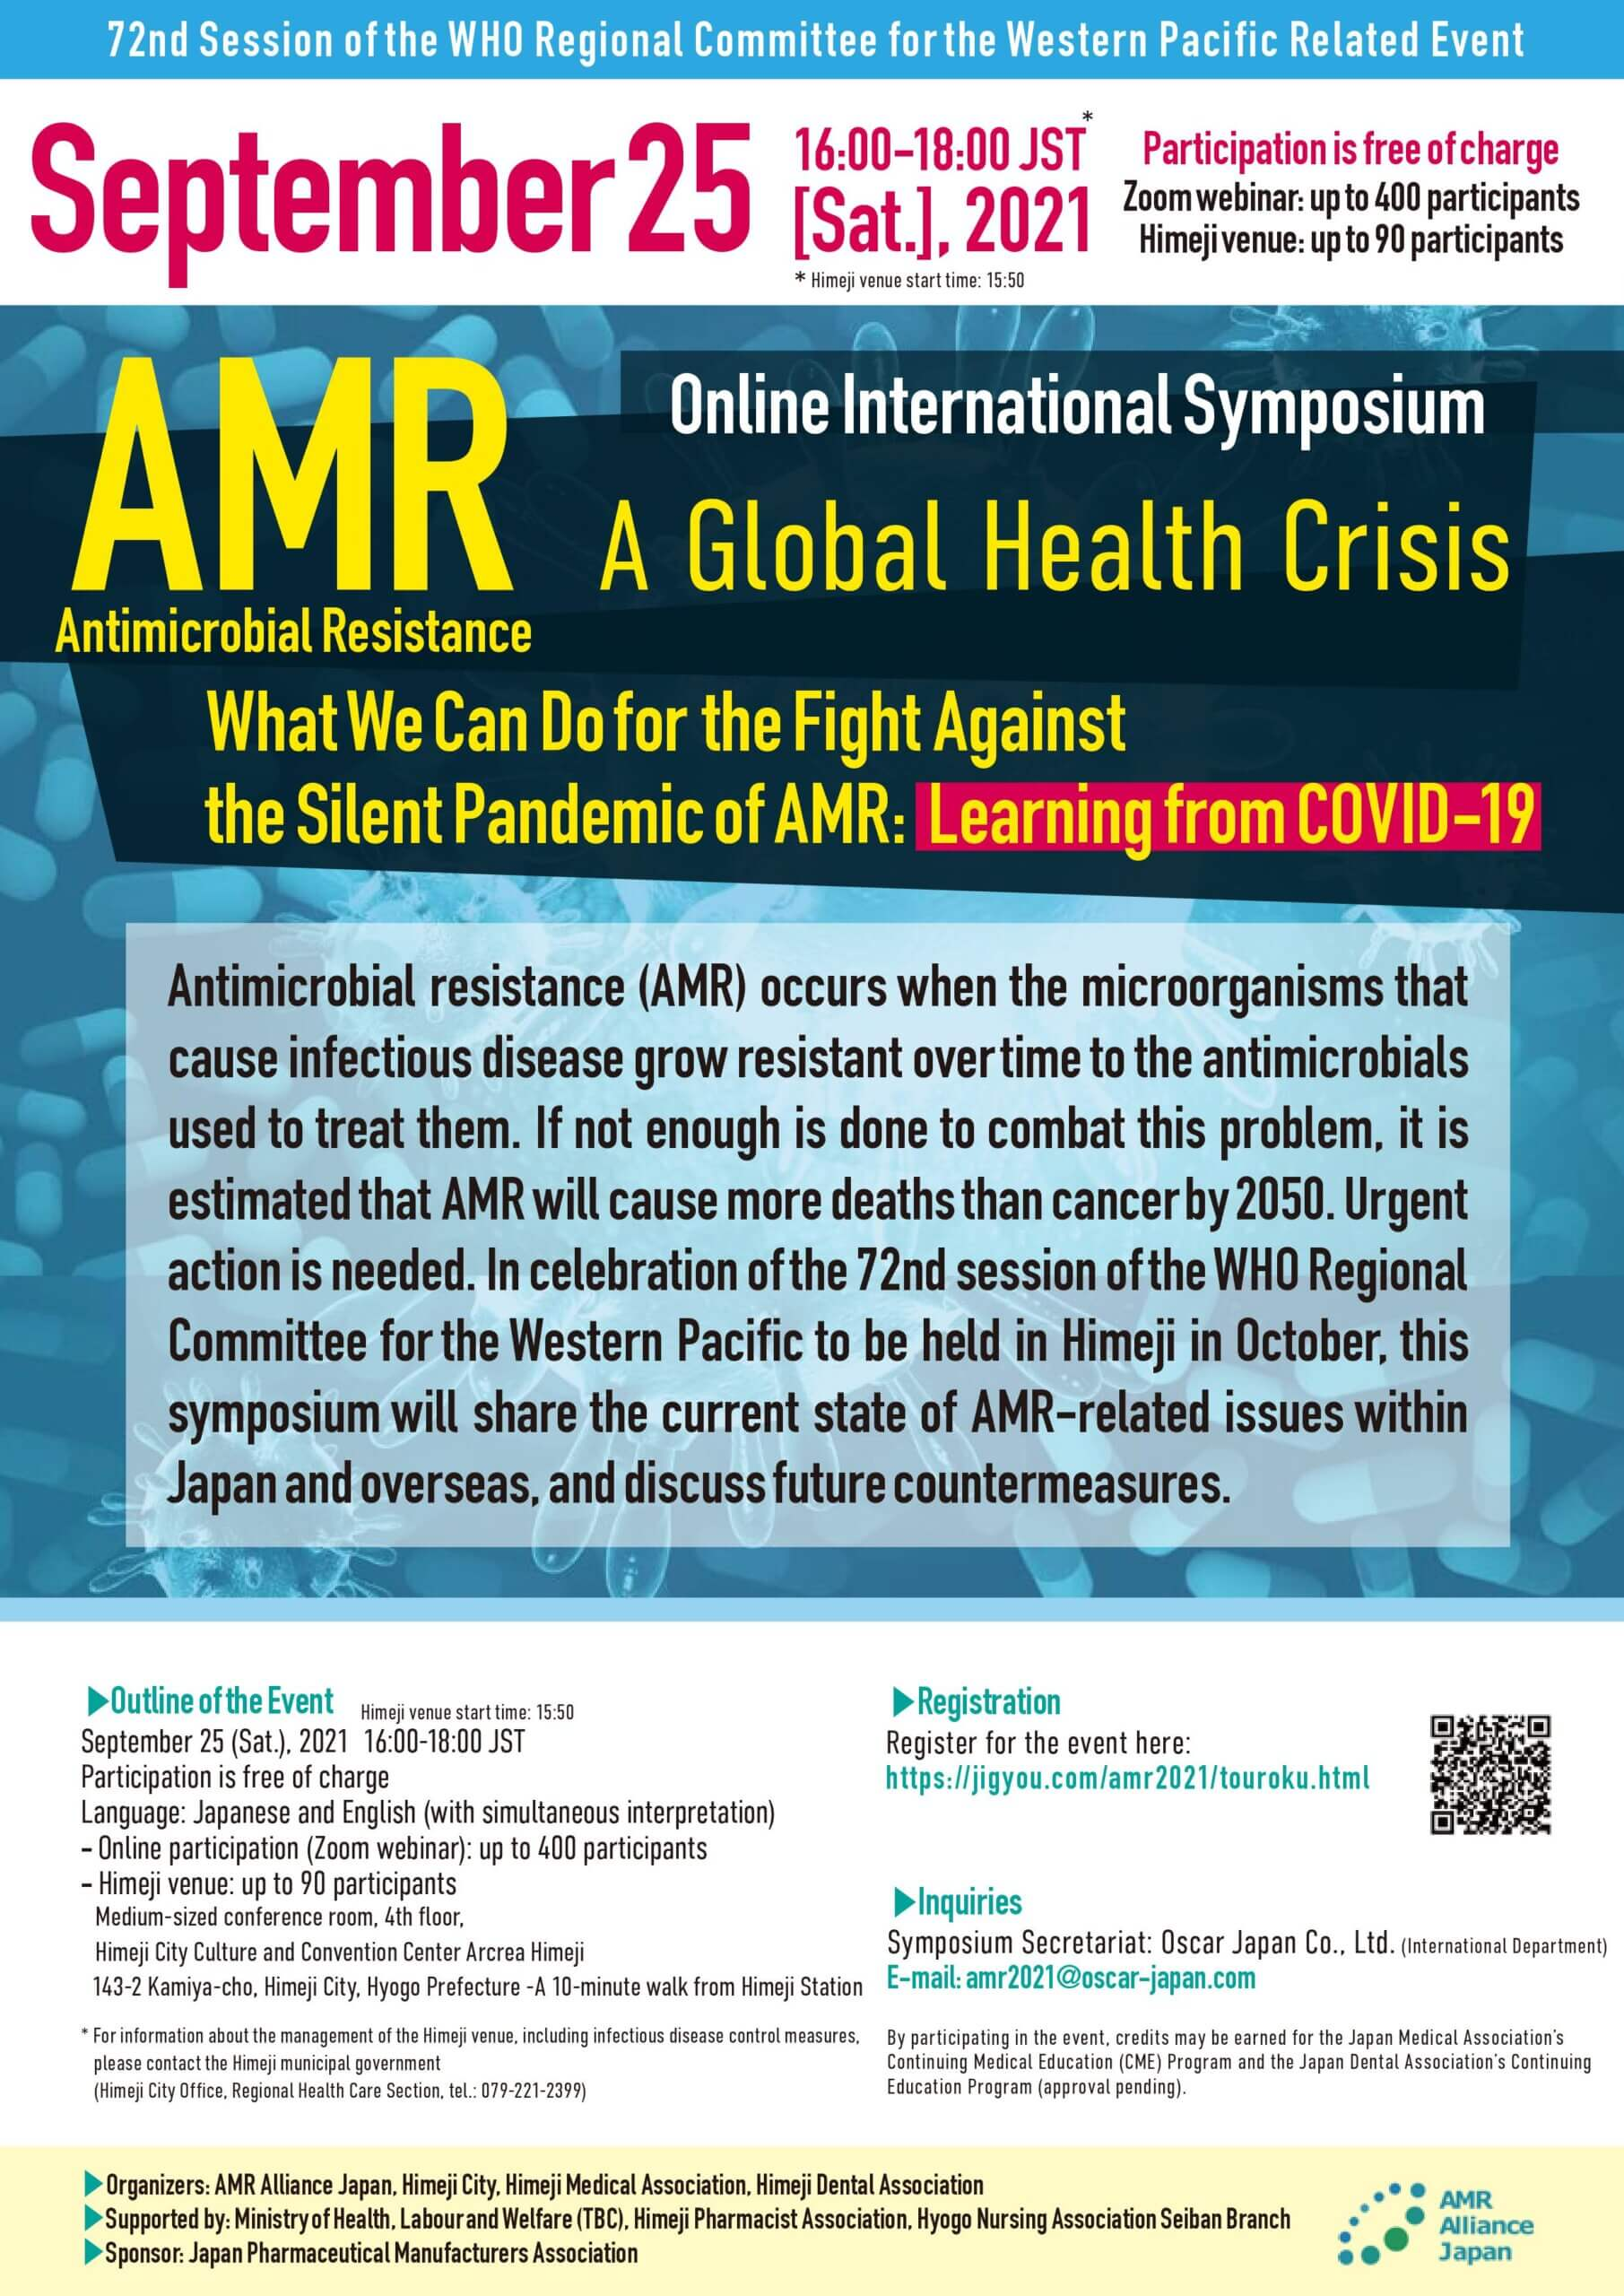 AMR Alliance Japan Policy Recommendations